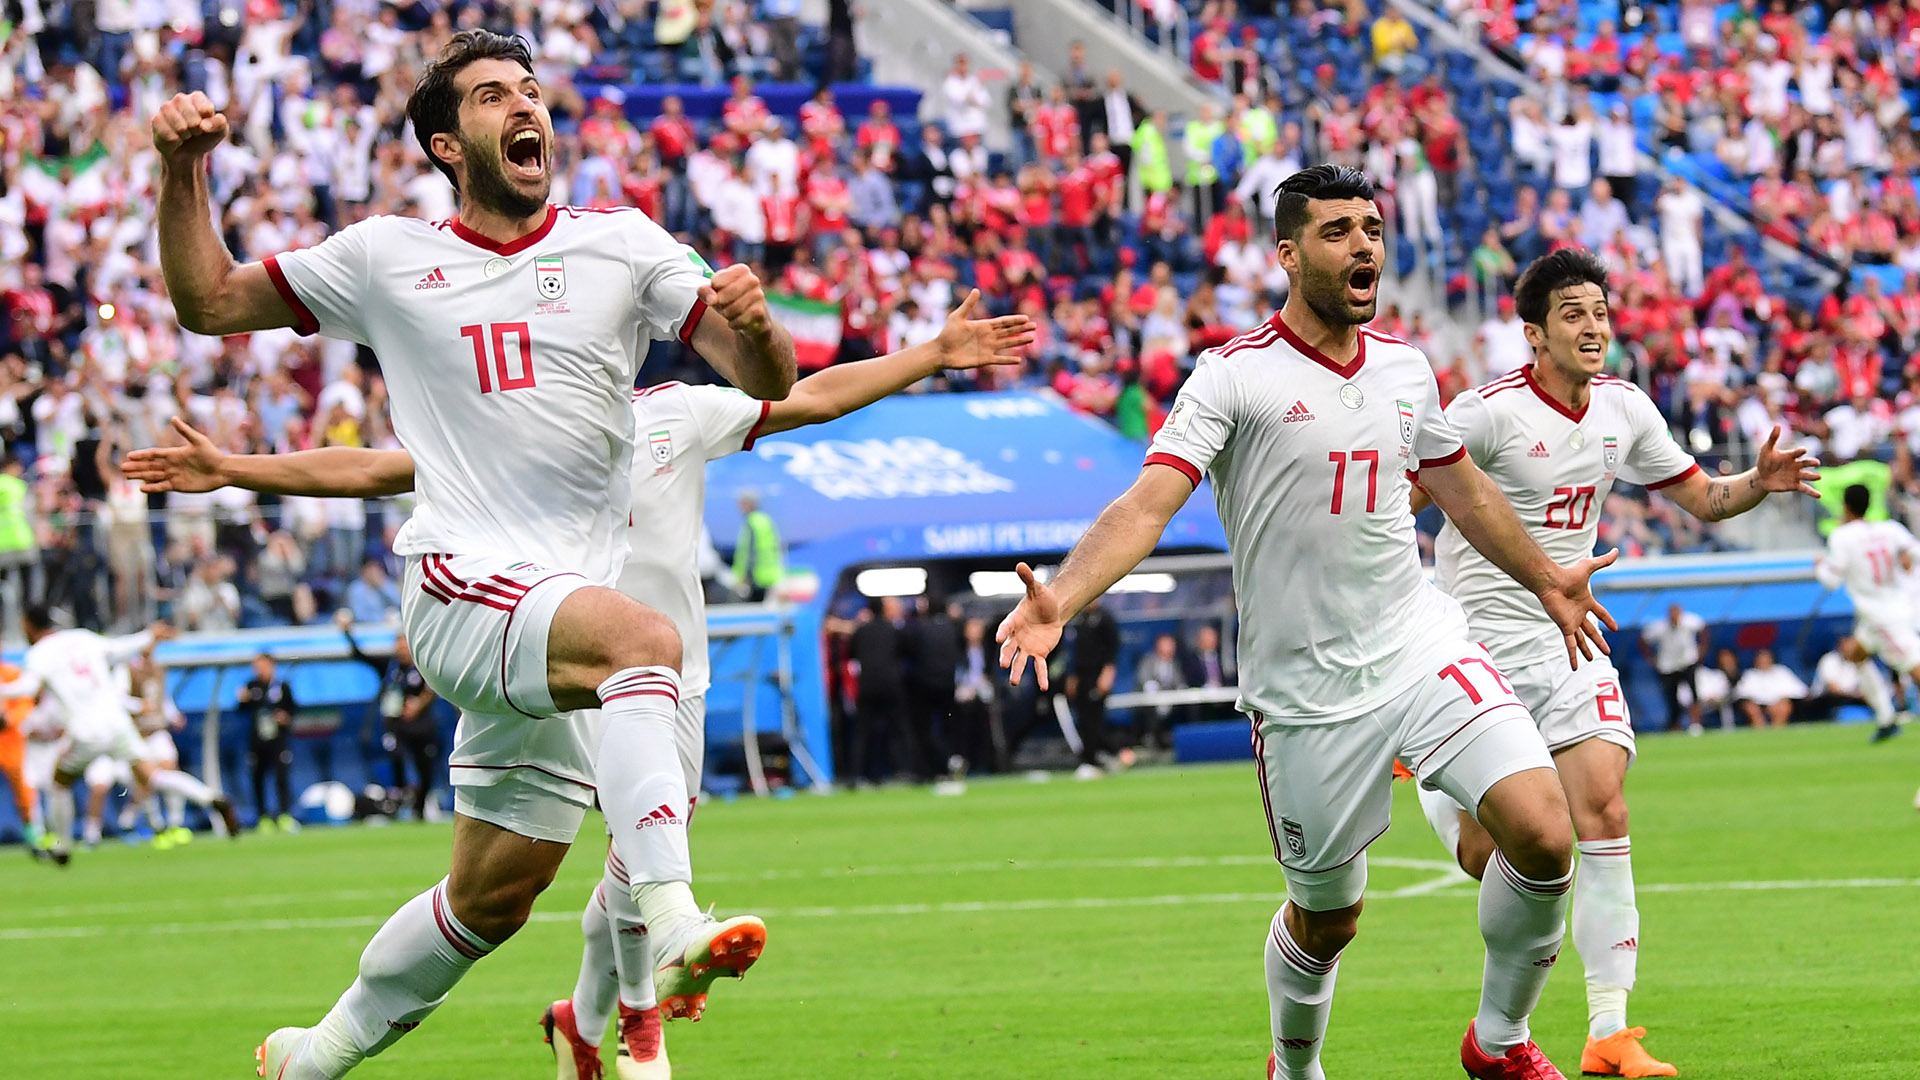 Diego Costa's goal gives Spain hard-fought 1-0 victory over Iran